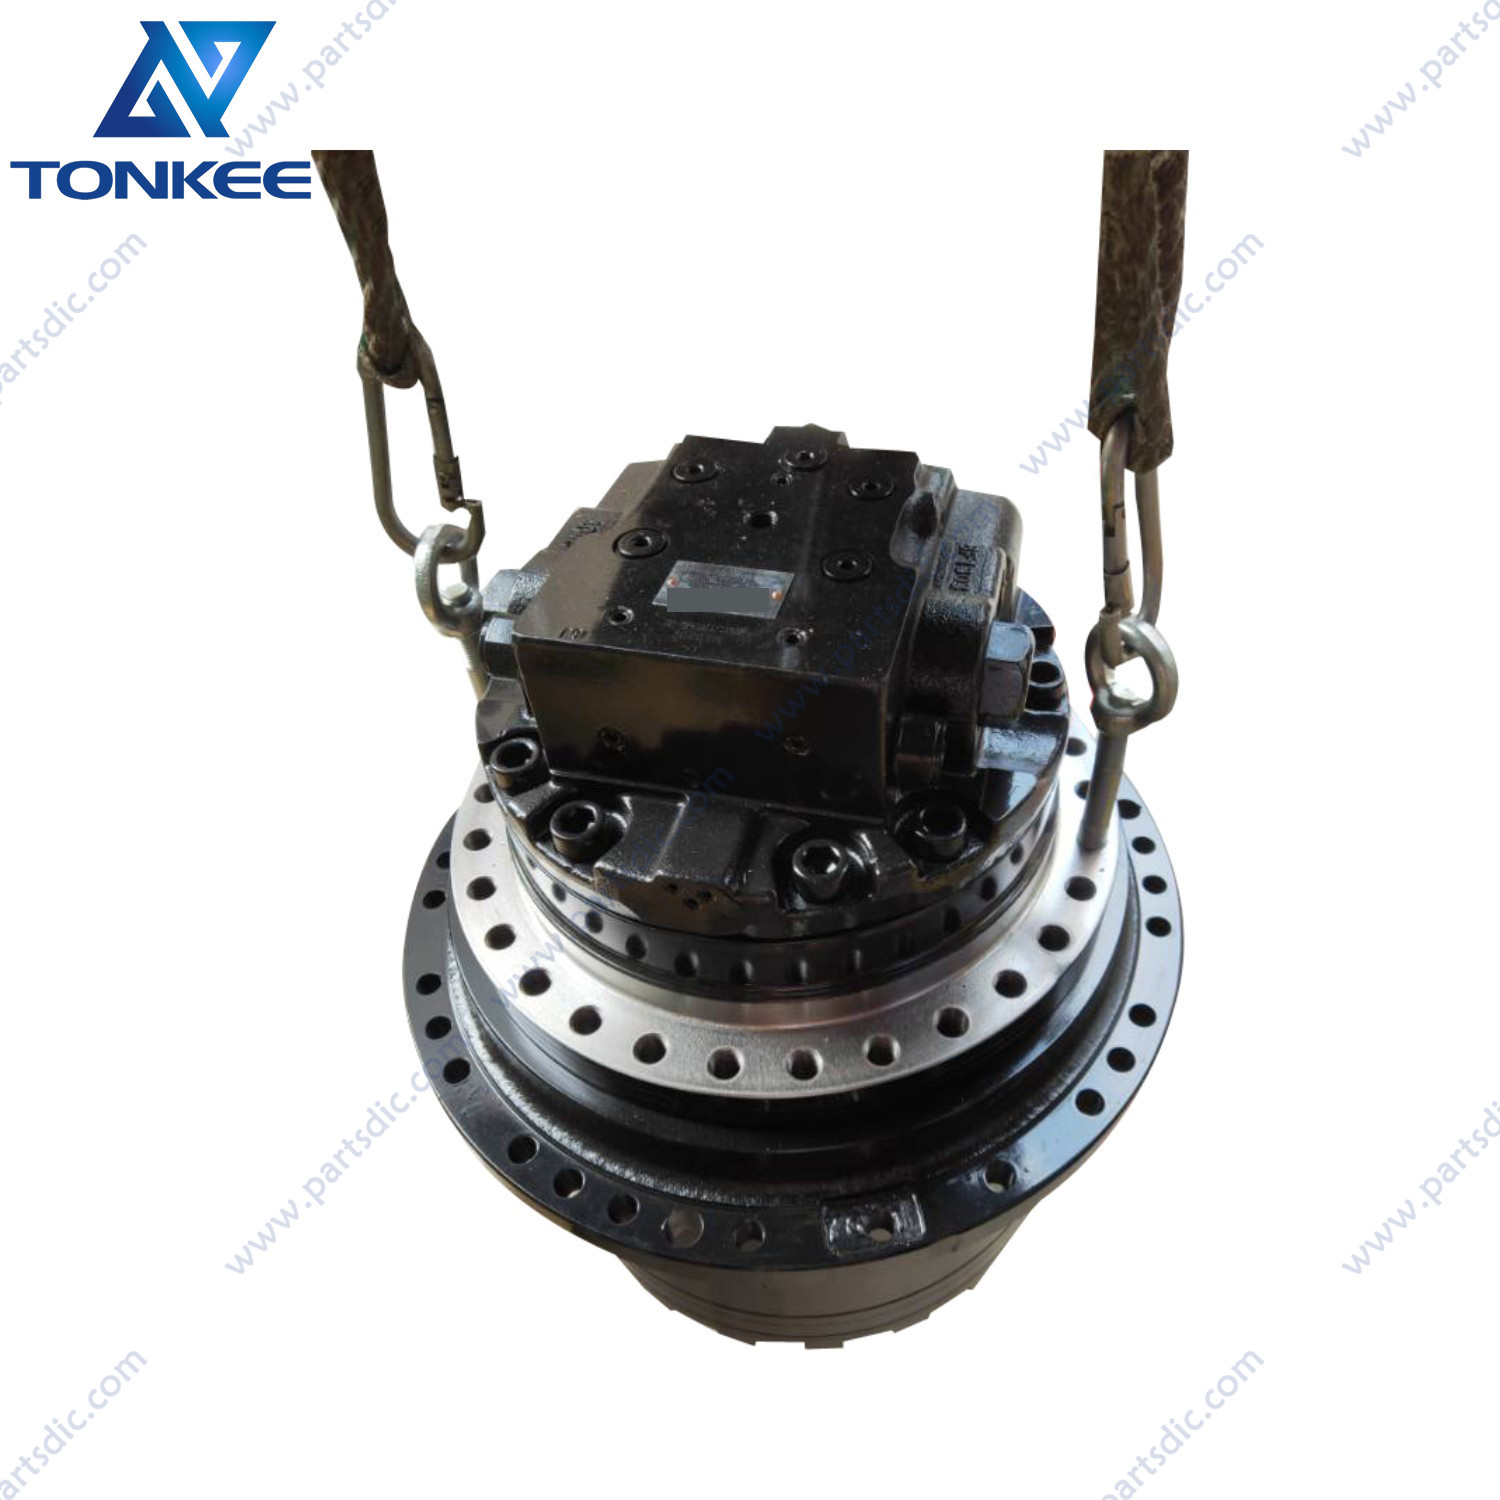 Construction Machinery Parts VOE14533651 excavator track device EC210B EC240B final drive TM40VC travel motor Assy